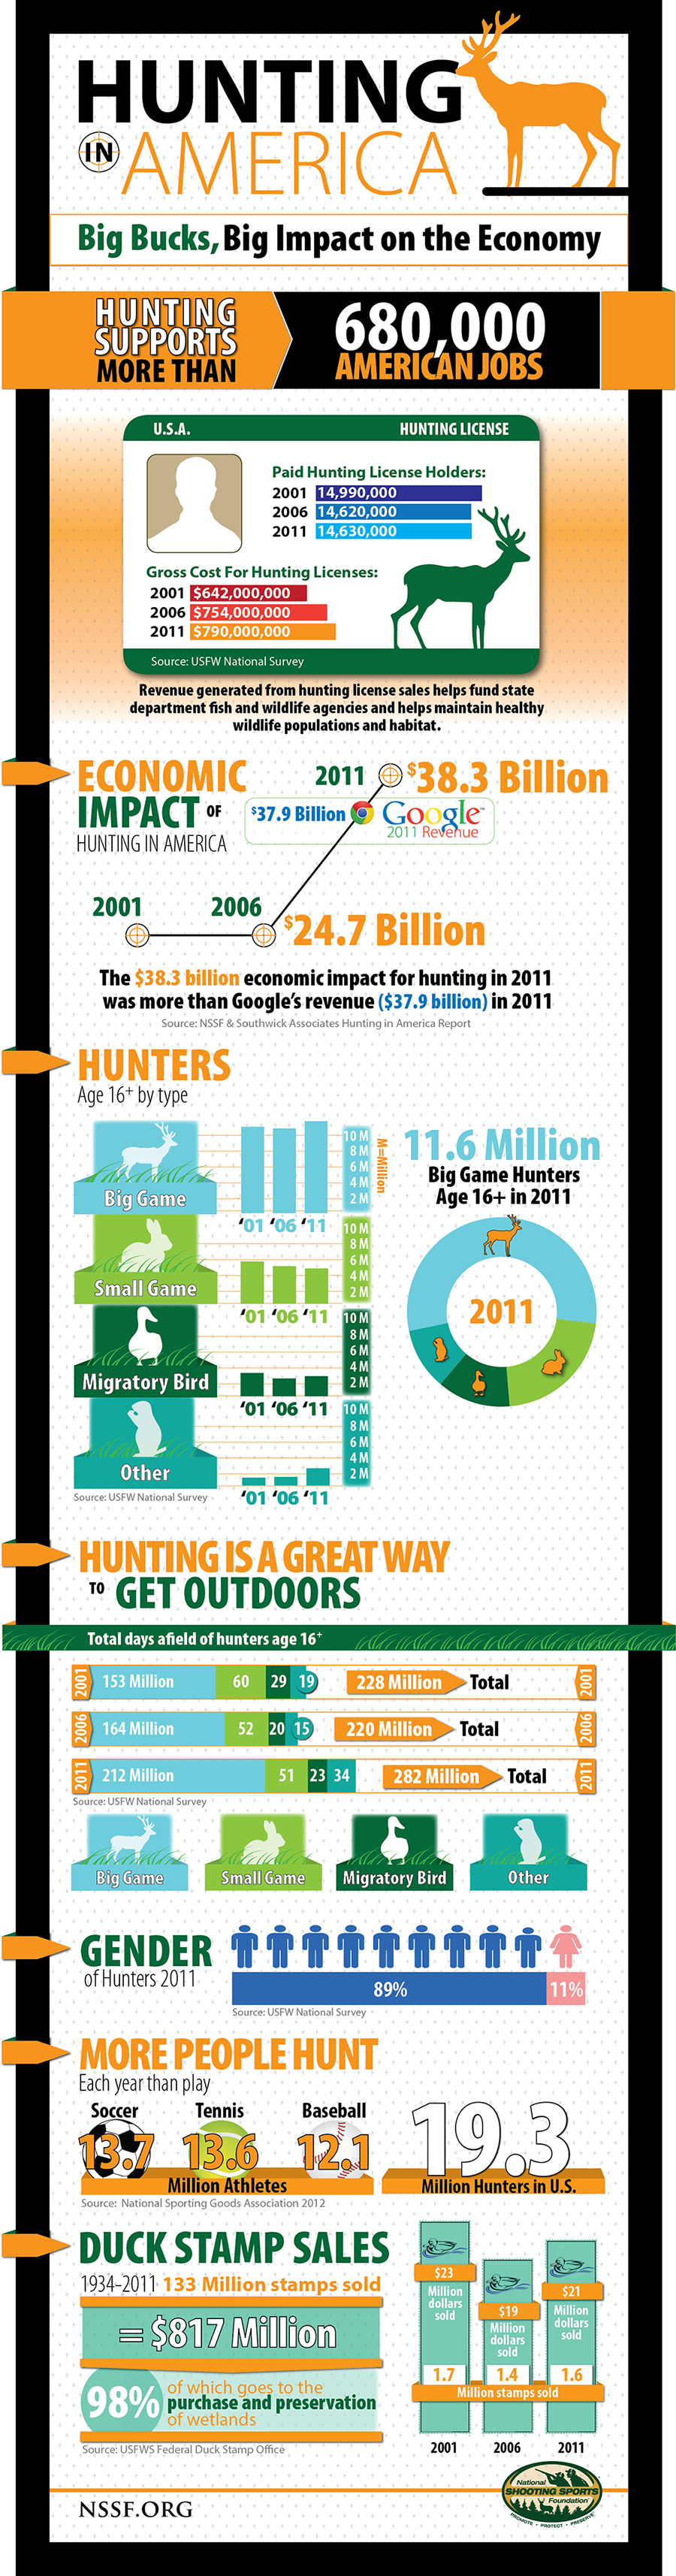 NSSF_Hunting_Infographic